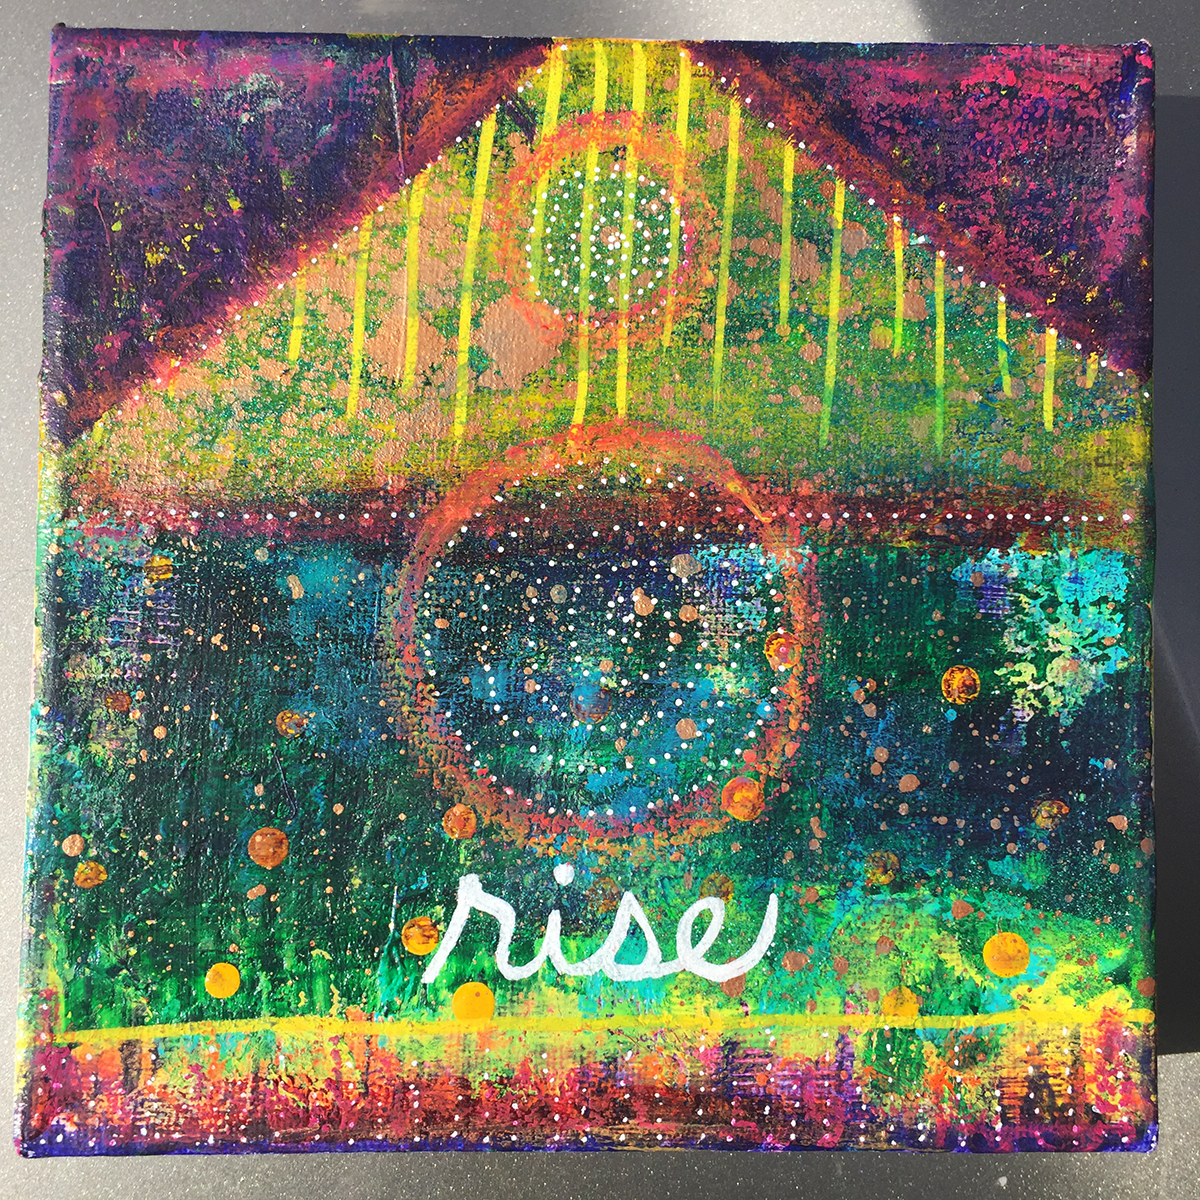 Rise. 6 x 6 inch acrylic and oil pastel on gallery wrapped canvas